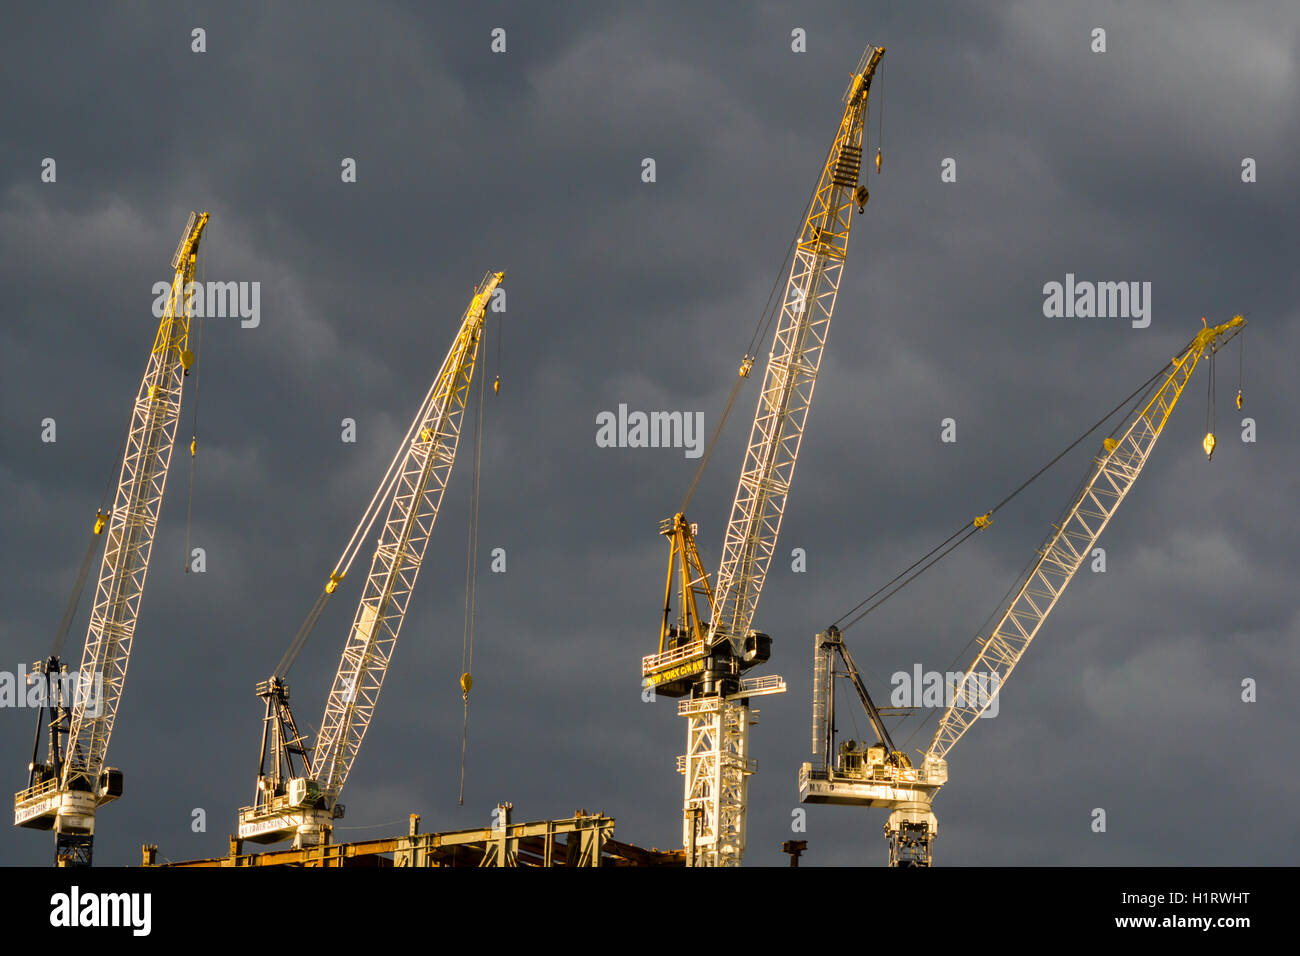 Cranes being used in the construction of the 30 Hudson Yards project on the west side of New York on Wednesday, Stock Photo